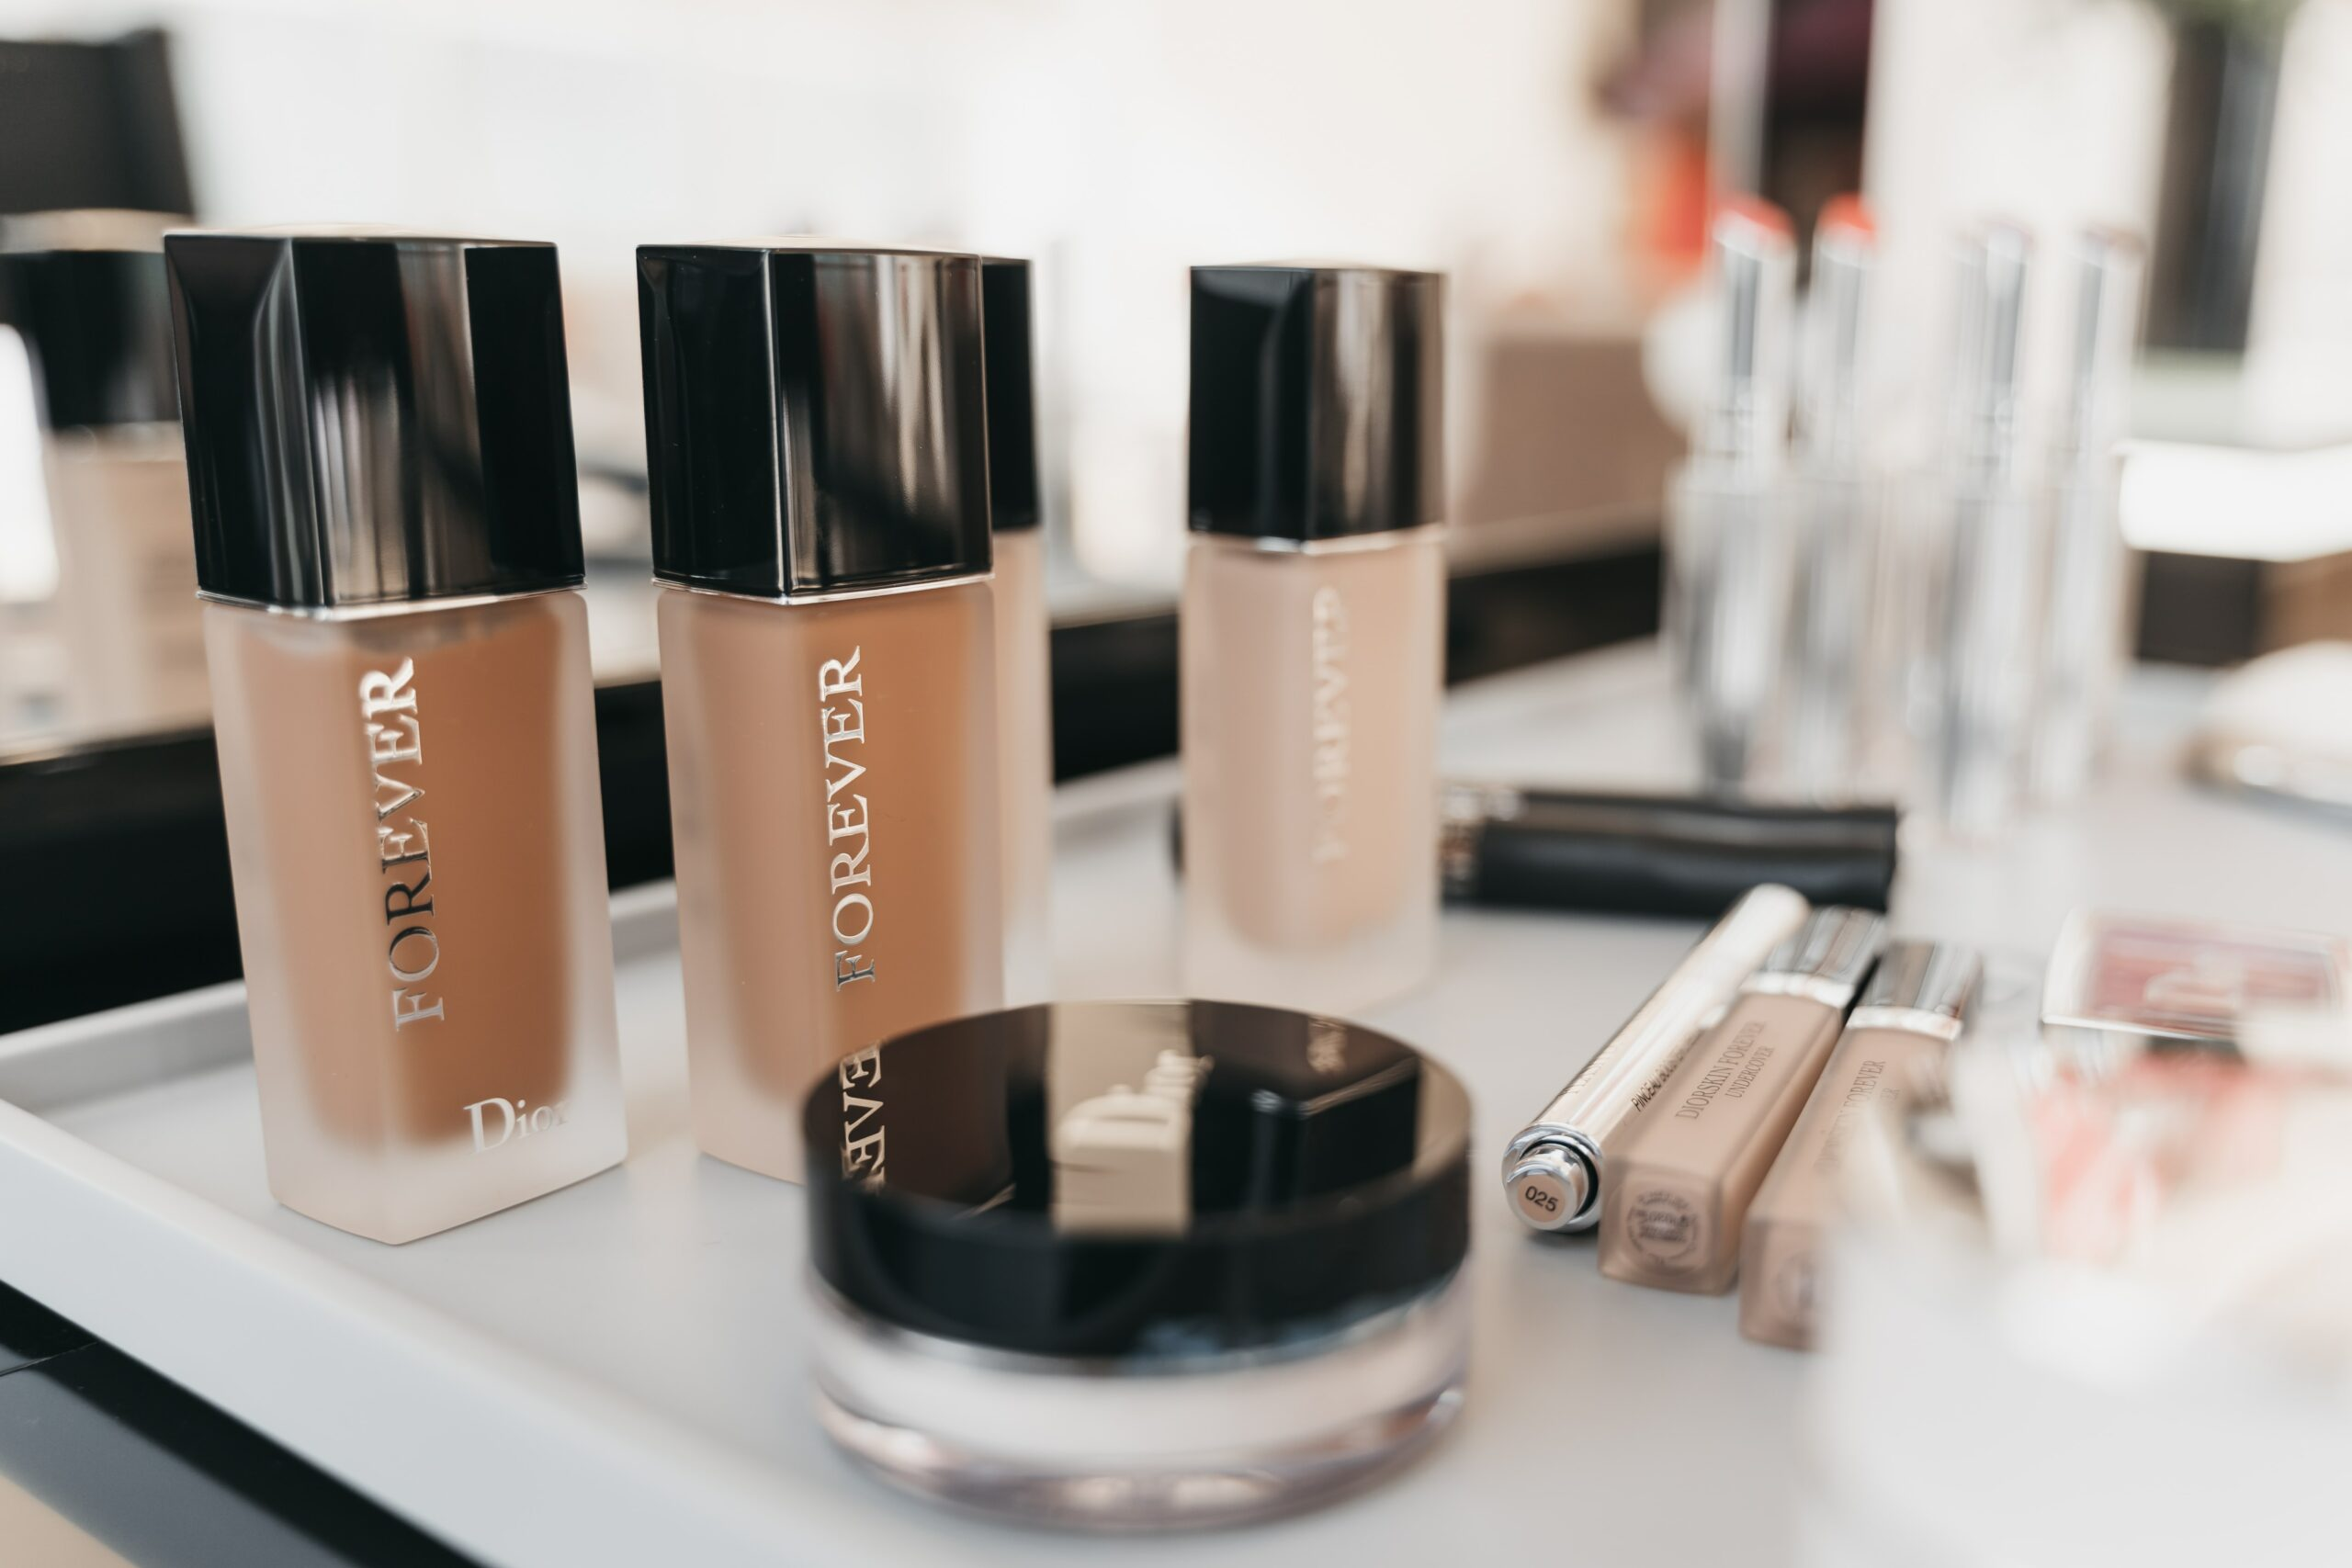 14 Best Full Coverage Foundations for All-Day Wear